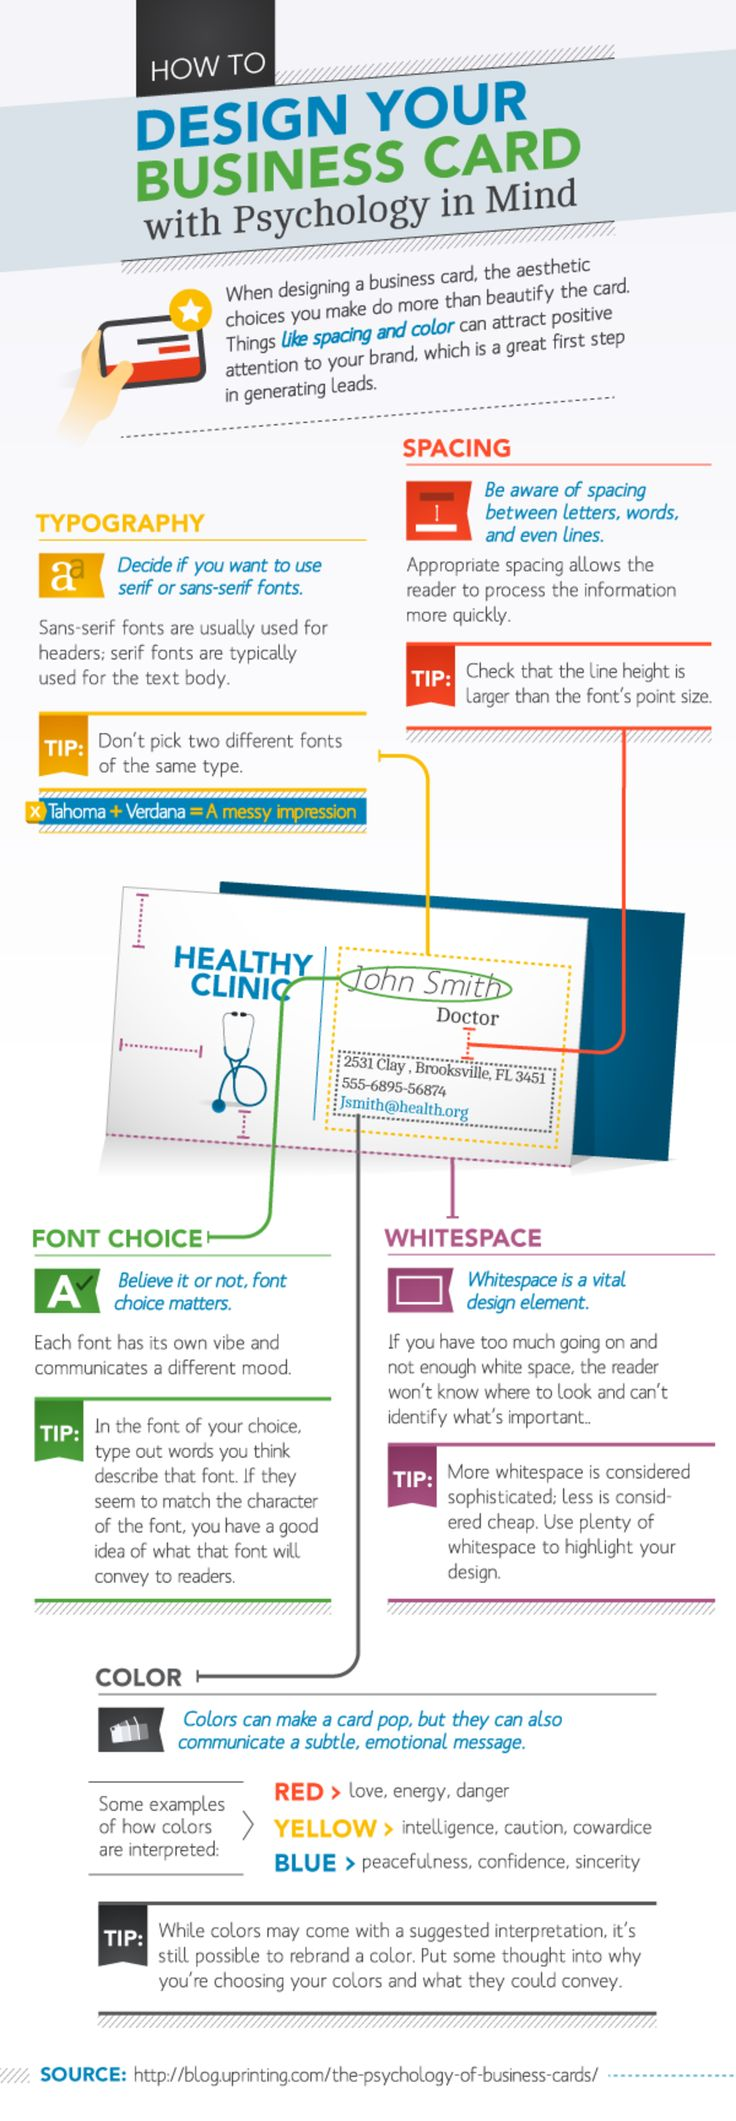 Design Your Business Card With Psychology In Mind | Infographic.